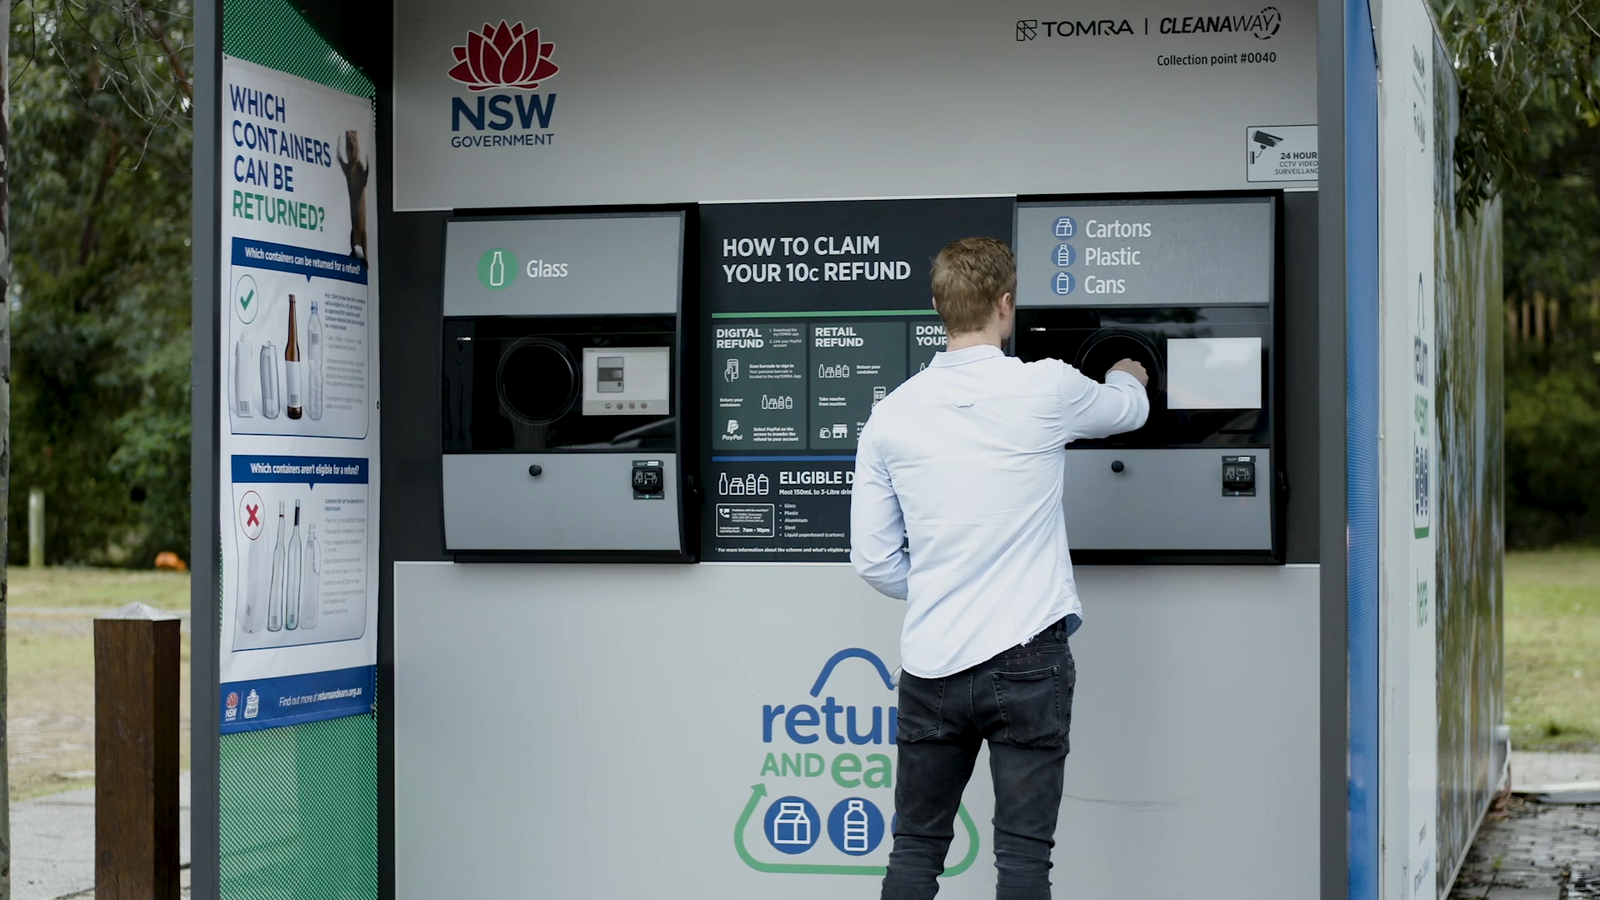 Think Like A Wolf: TOMRA 'Return and Earn' Container Deposit Scheme